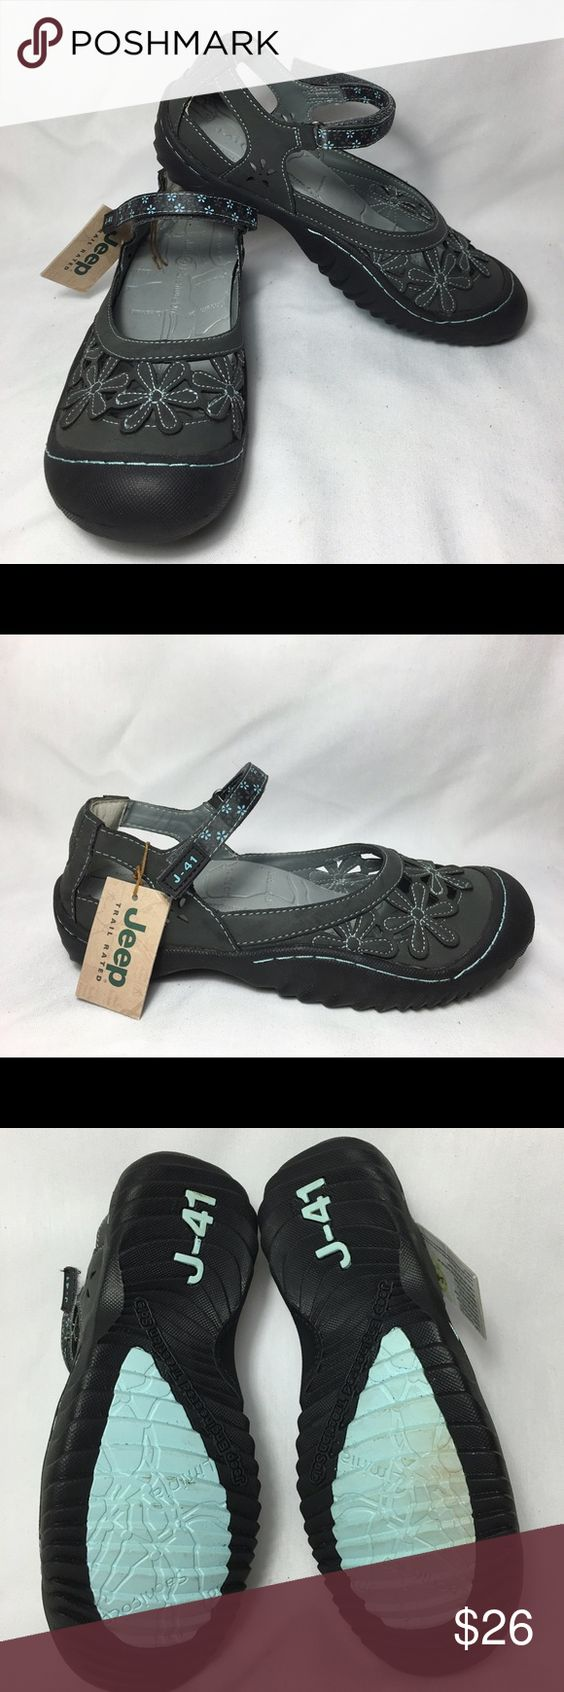 J-41 by Jeep Sport Sneaker These are J-41 (Orchid) by Jeep engineered traction sole and water-ready sport shoes. These shoes are brand new however have a small defect on bottom sole of right shoe that appears to have been used! Jeep Shoes Athletic Shoes